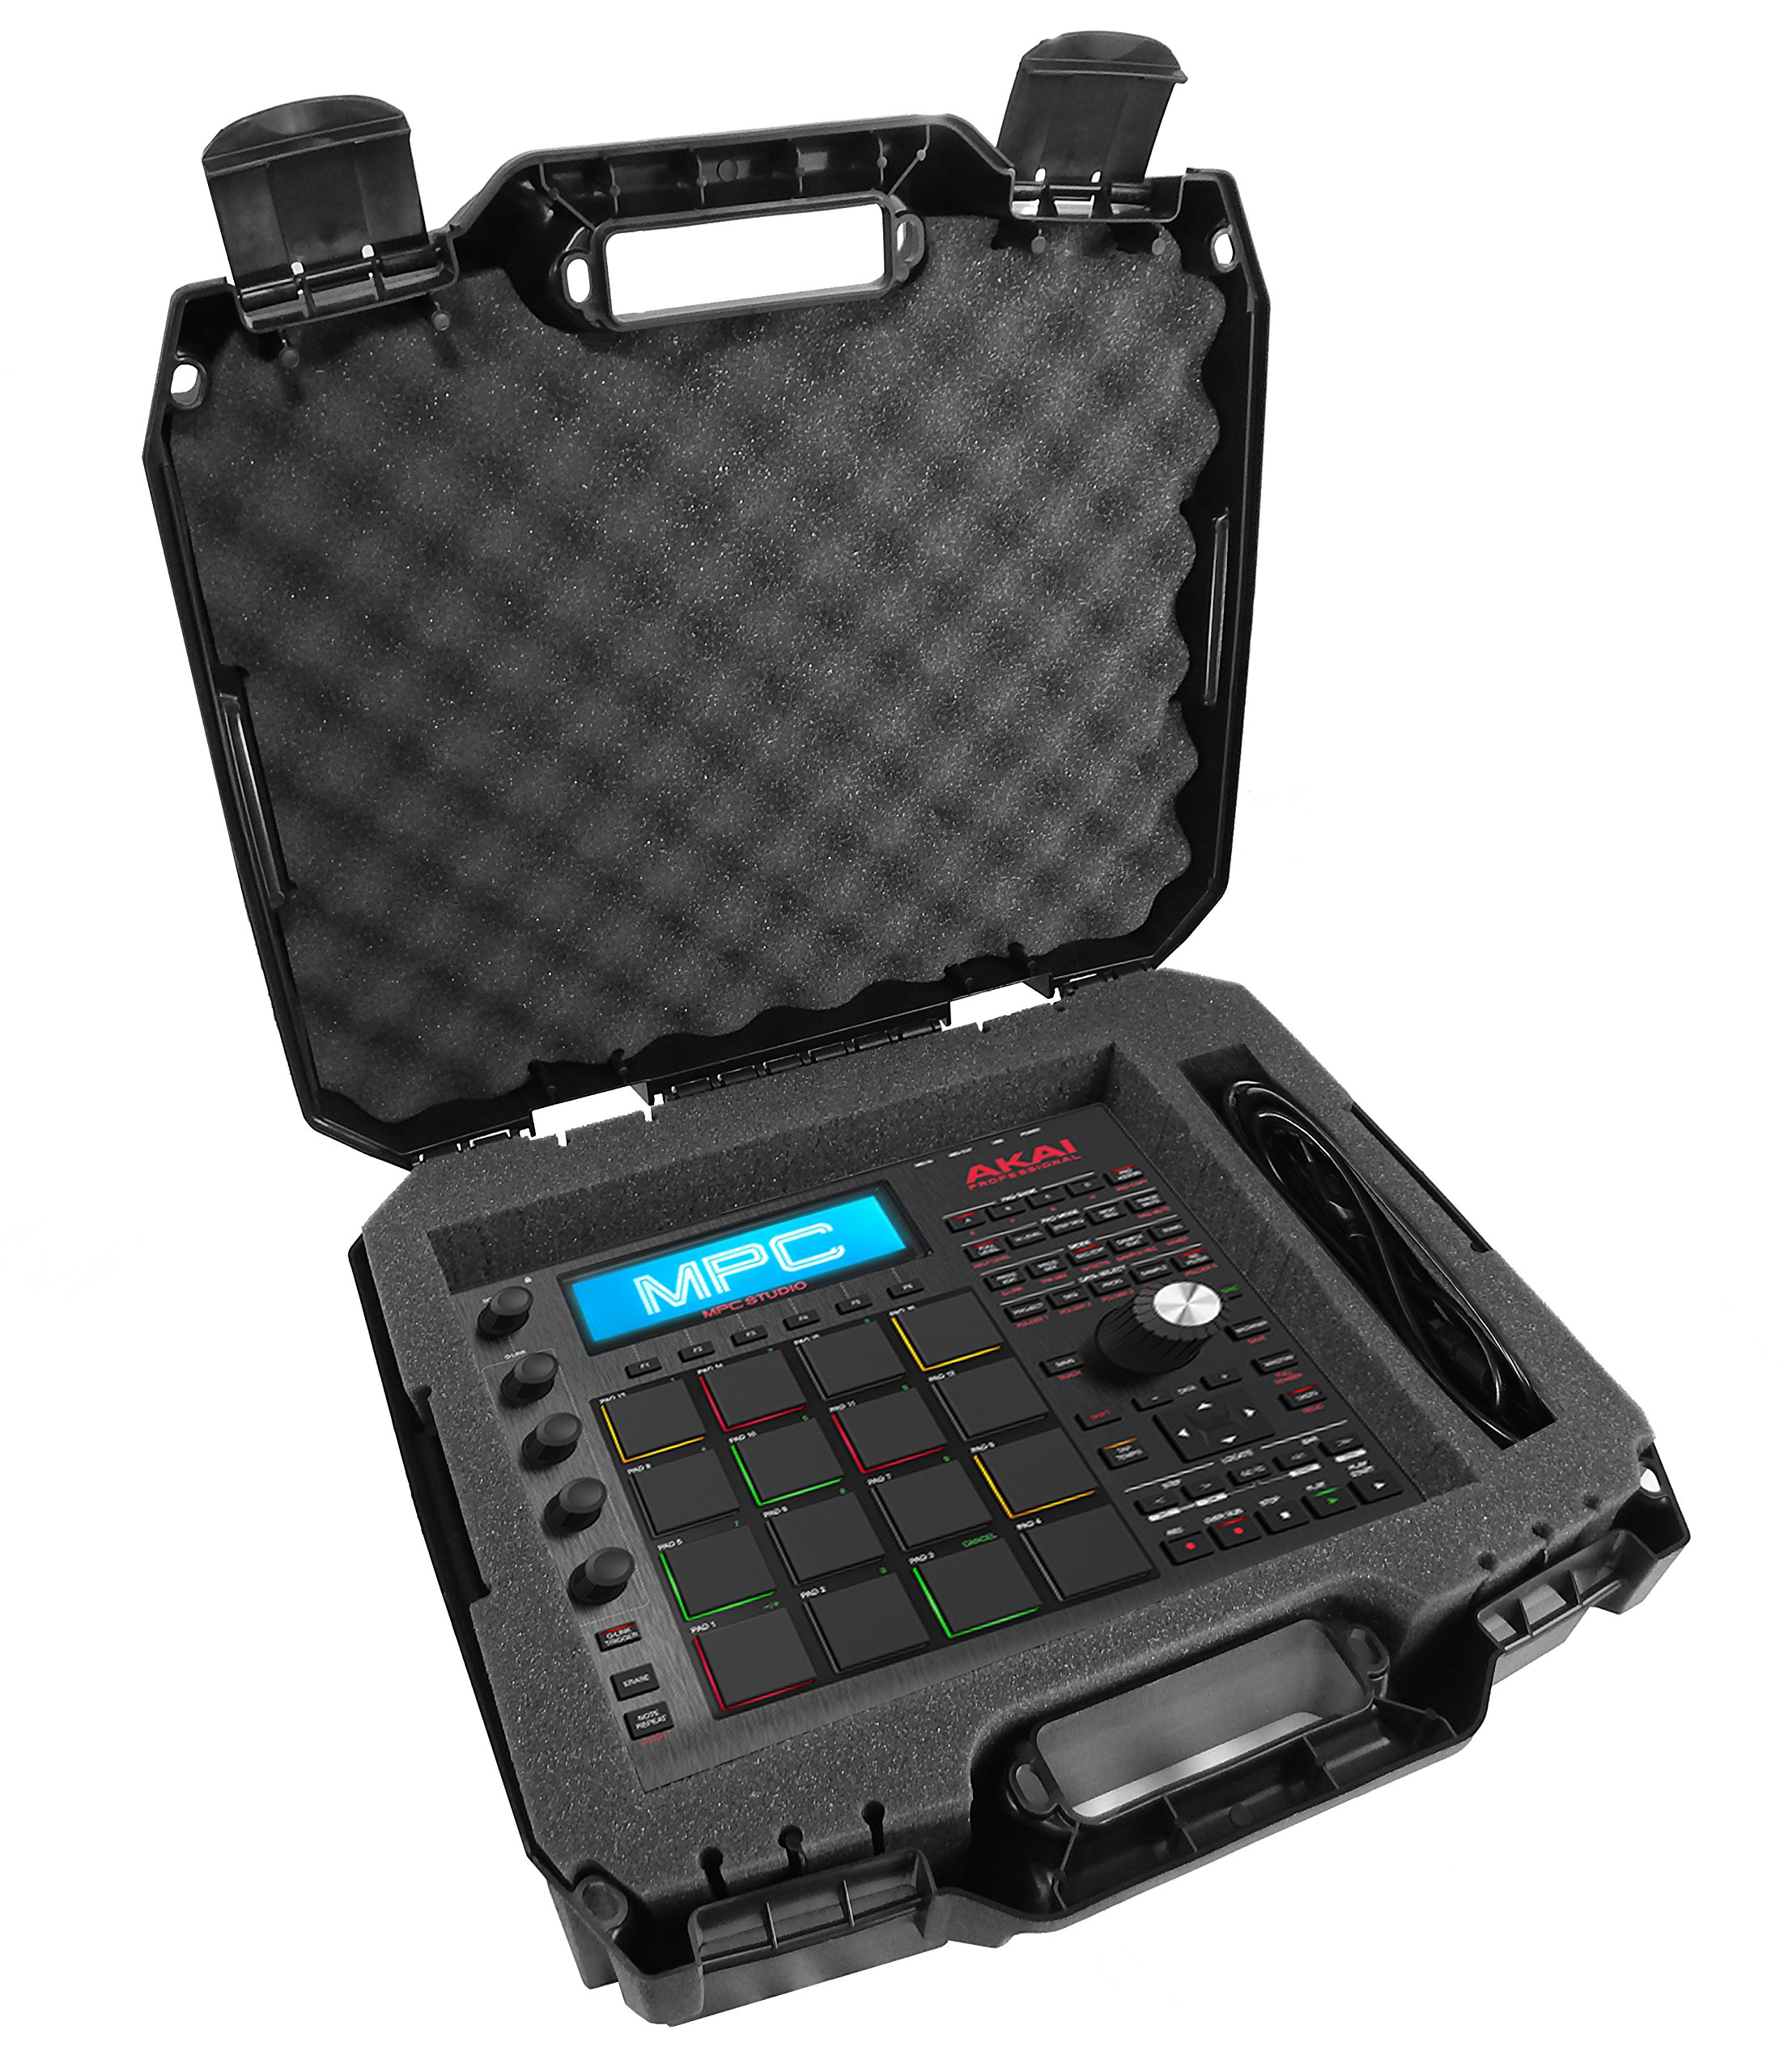 ArmorXL Carrying Case 17'' for KeyPad Drum Controllers - Fits Akai Professional MPD218, MPD226, APC Mini, MPX16, MPD18, XR20, MPC Studio Black, MPC Element, MIDImix, Tom Cat, Rhythm Wolf